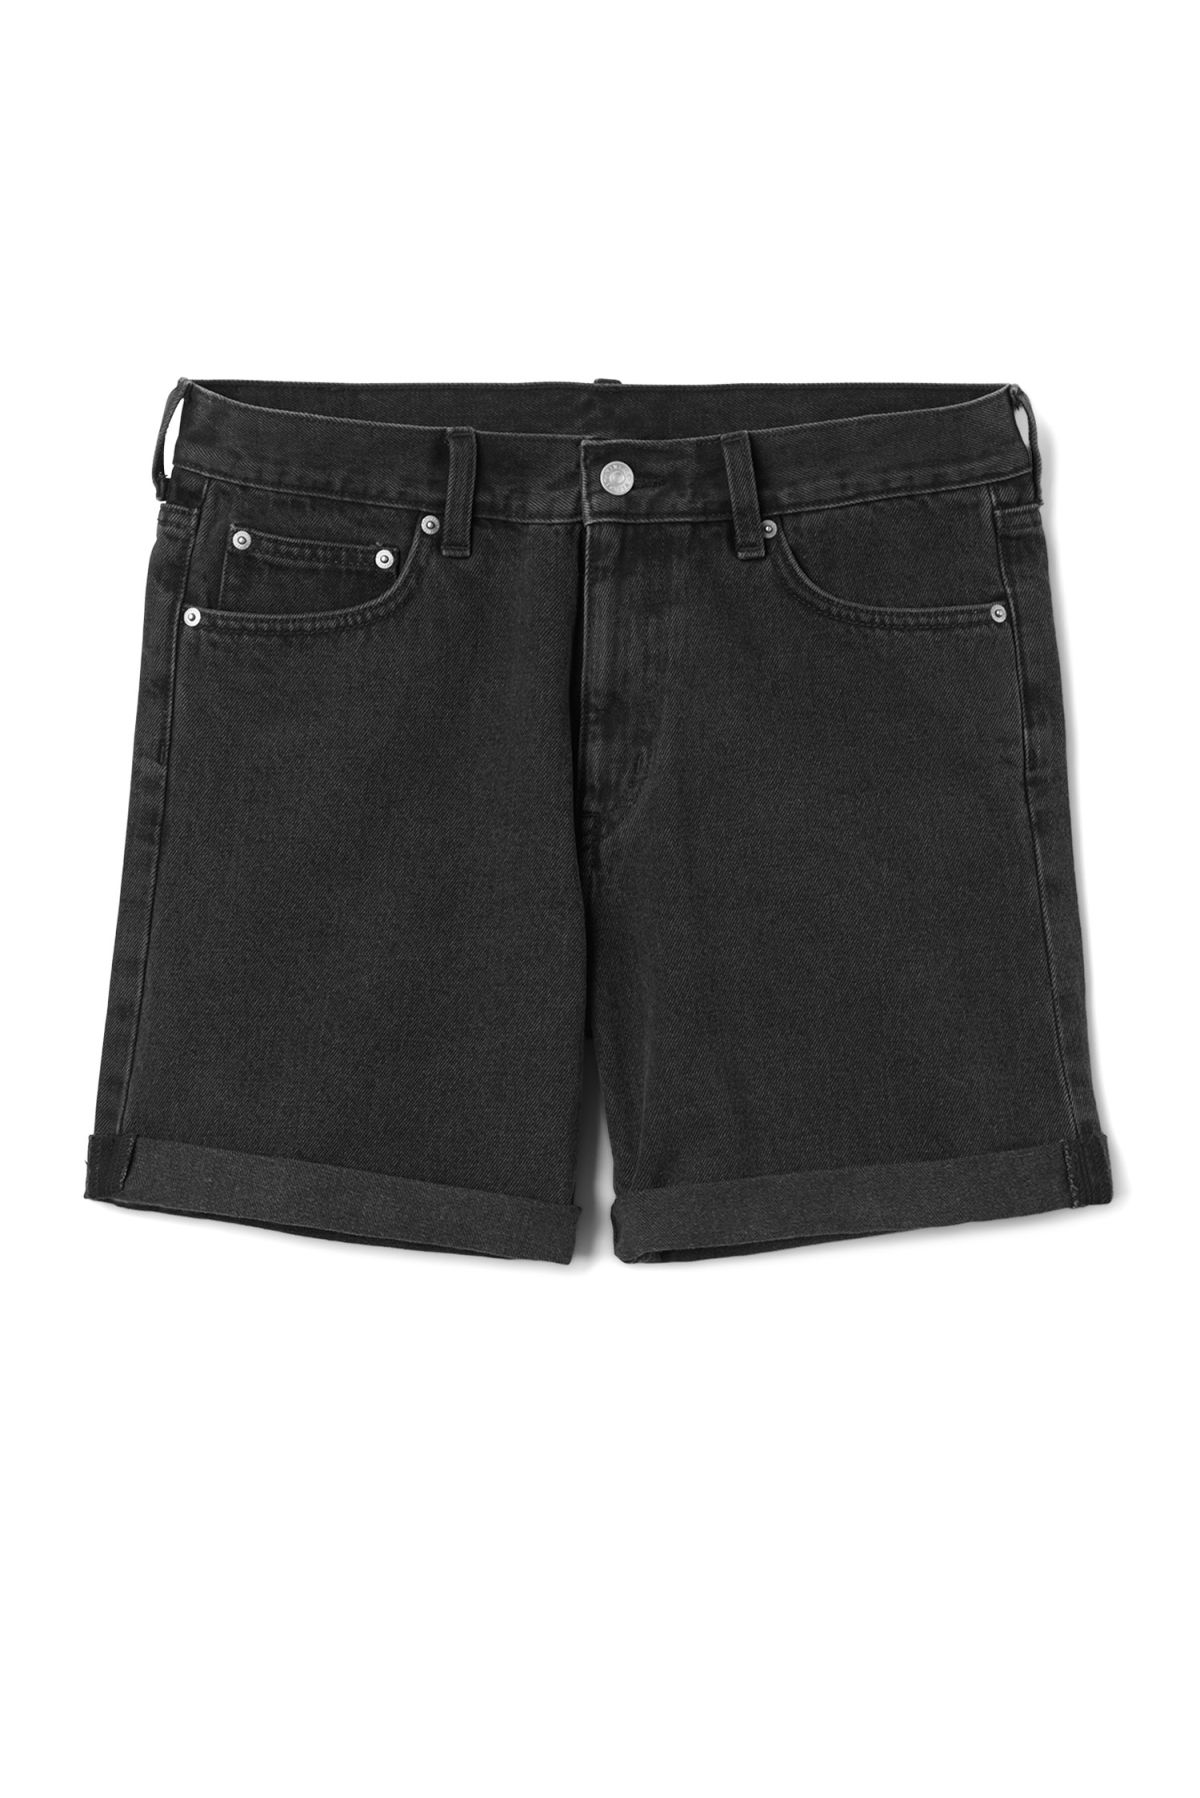 Front image of Weekday vacant shorts glory black in black